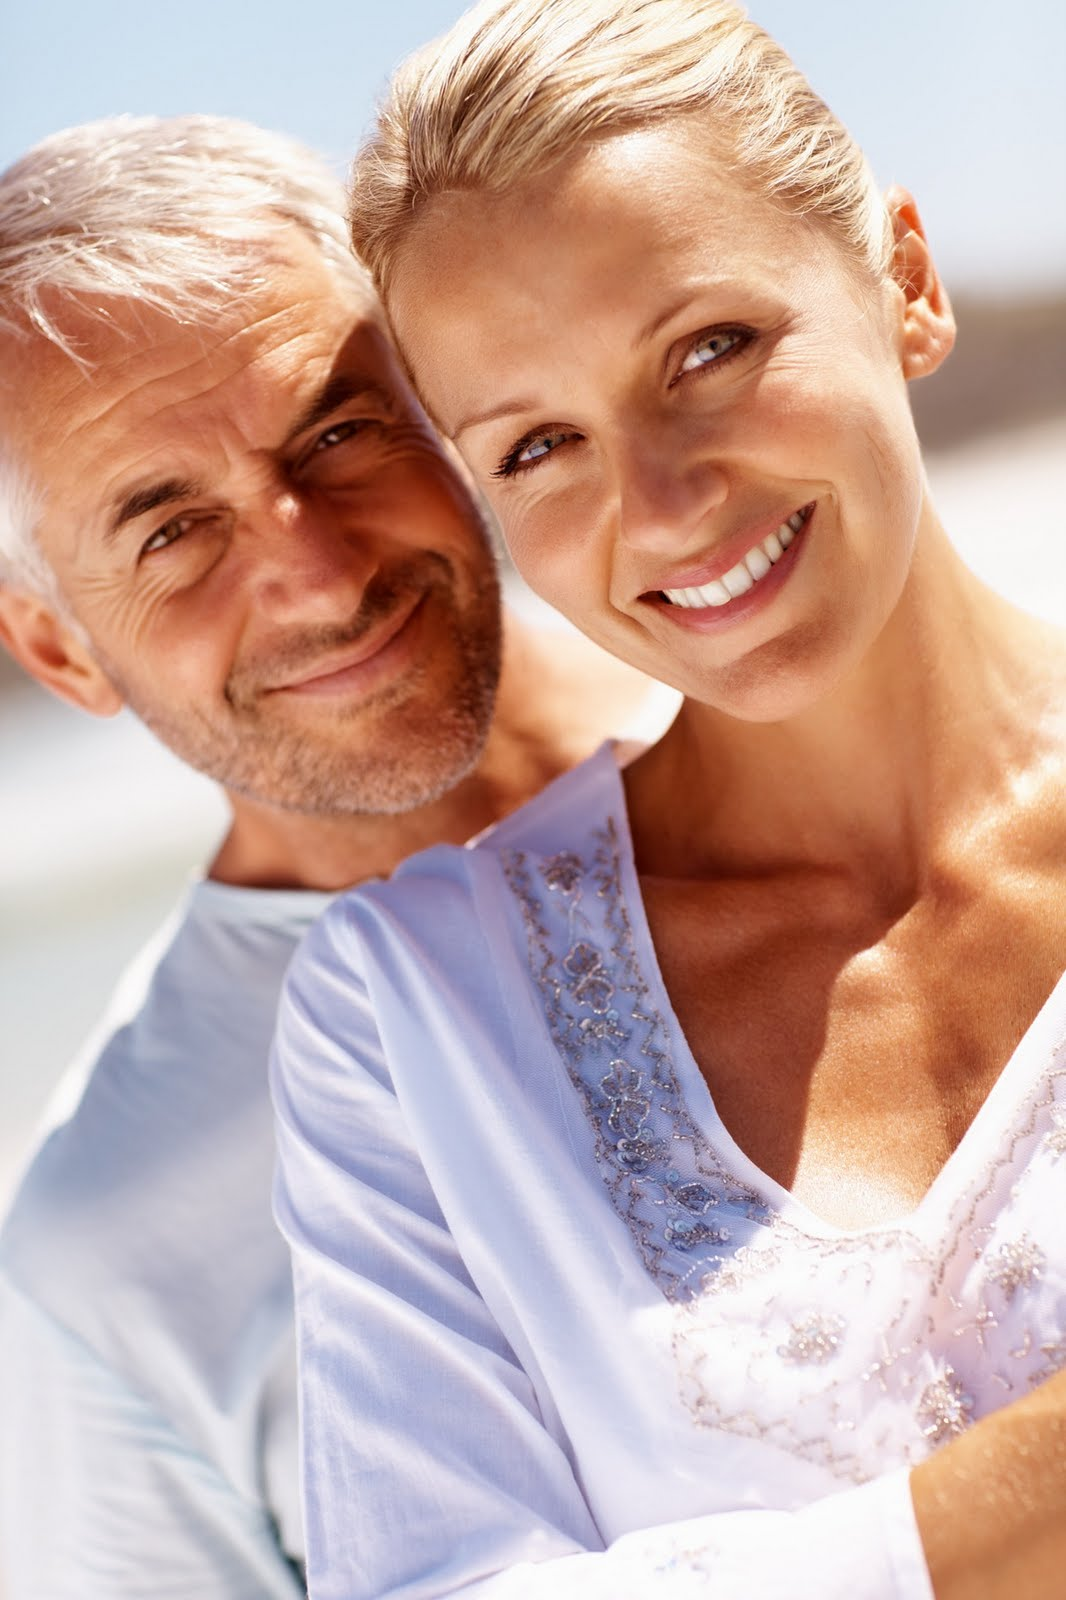 single men over 50 in inez The very best place to meet men is at an online dating site men are there 24 hours a day, 7 days a week it's like college was  the 15 best places for meeting men over 50 7 ways to make.